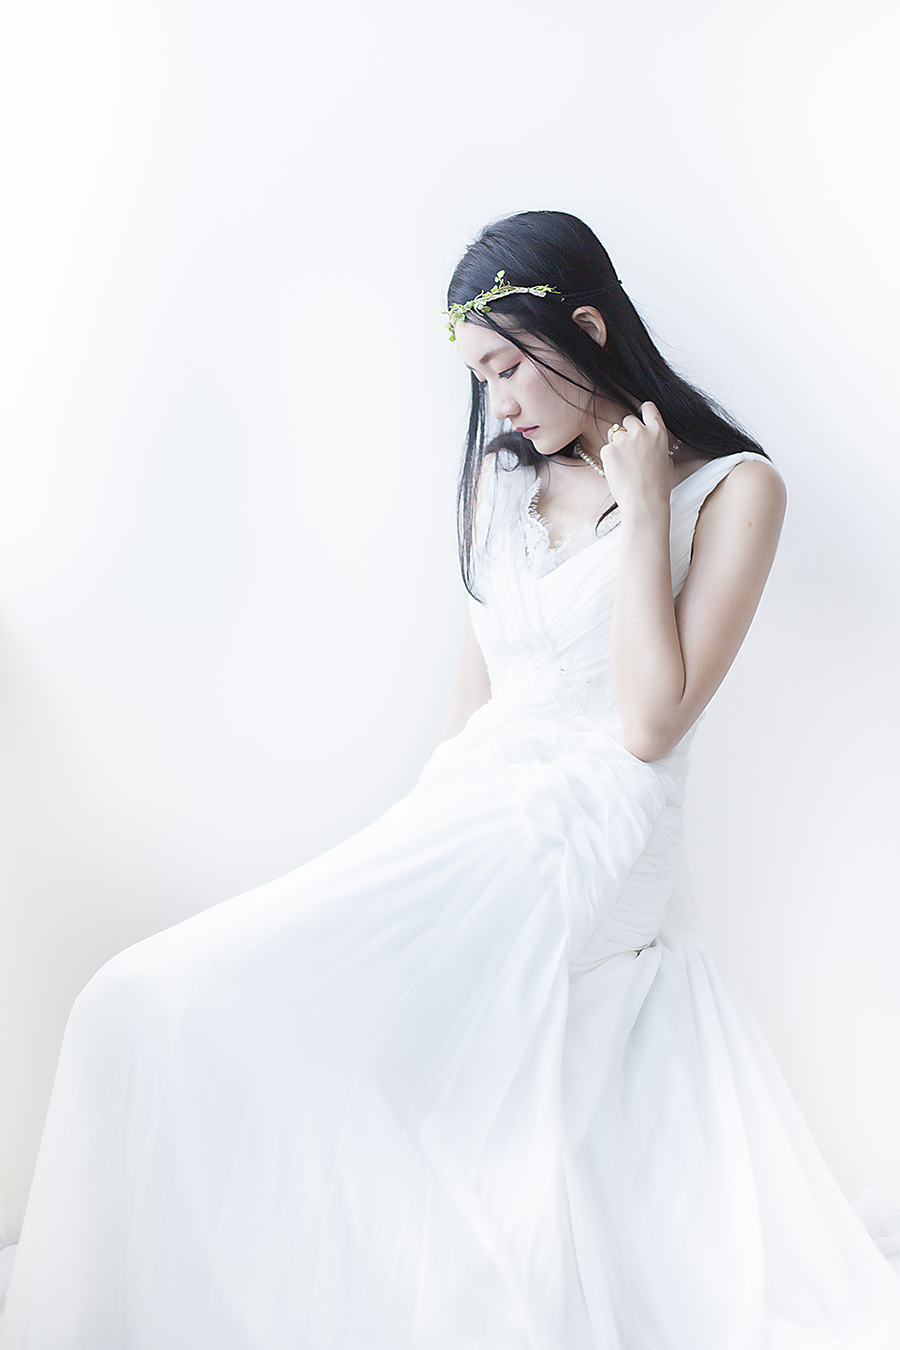 Rosa Novias white wedding gown, Paris Kids floral headband, handed down pearl necklace and pearl ring.